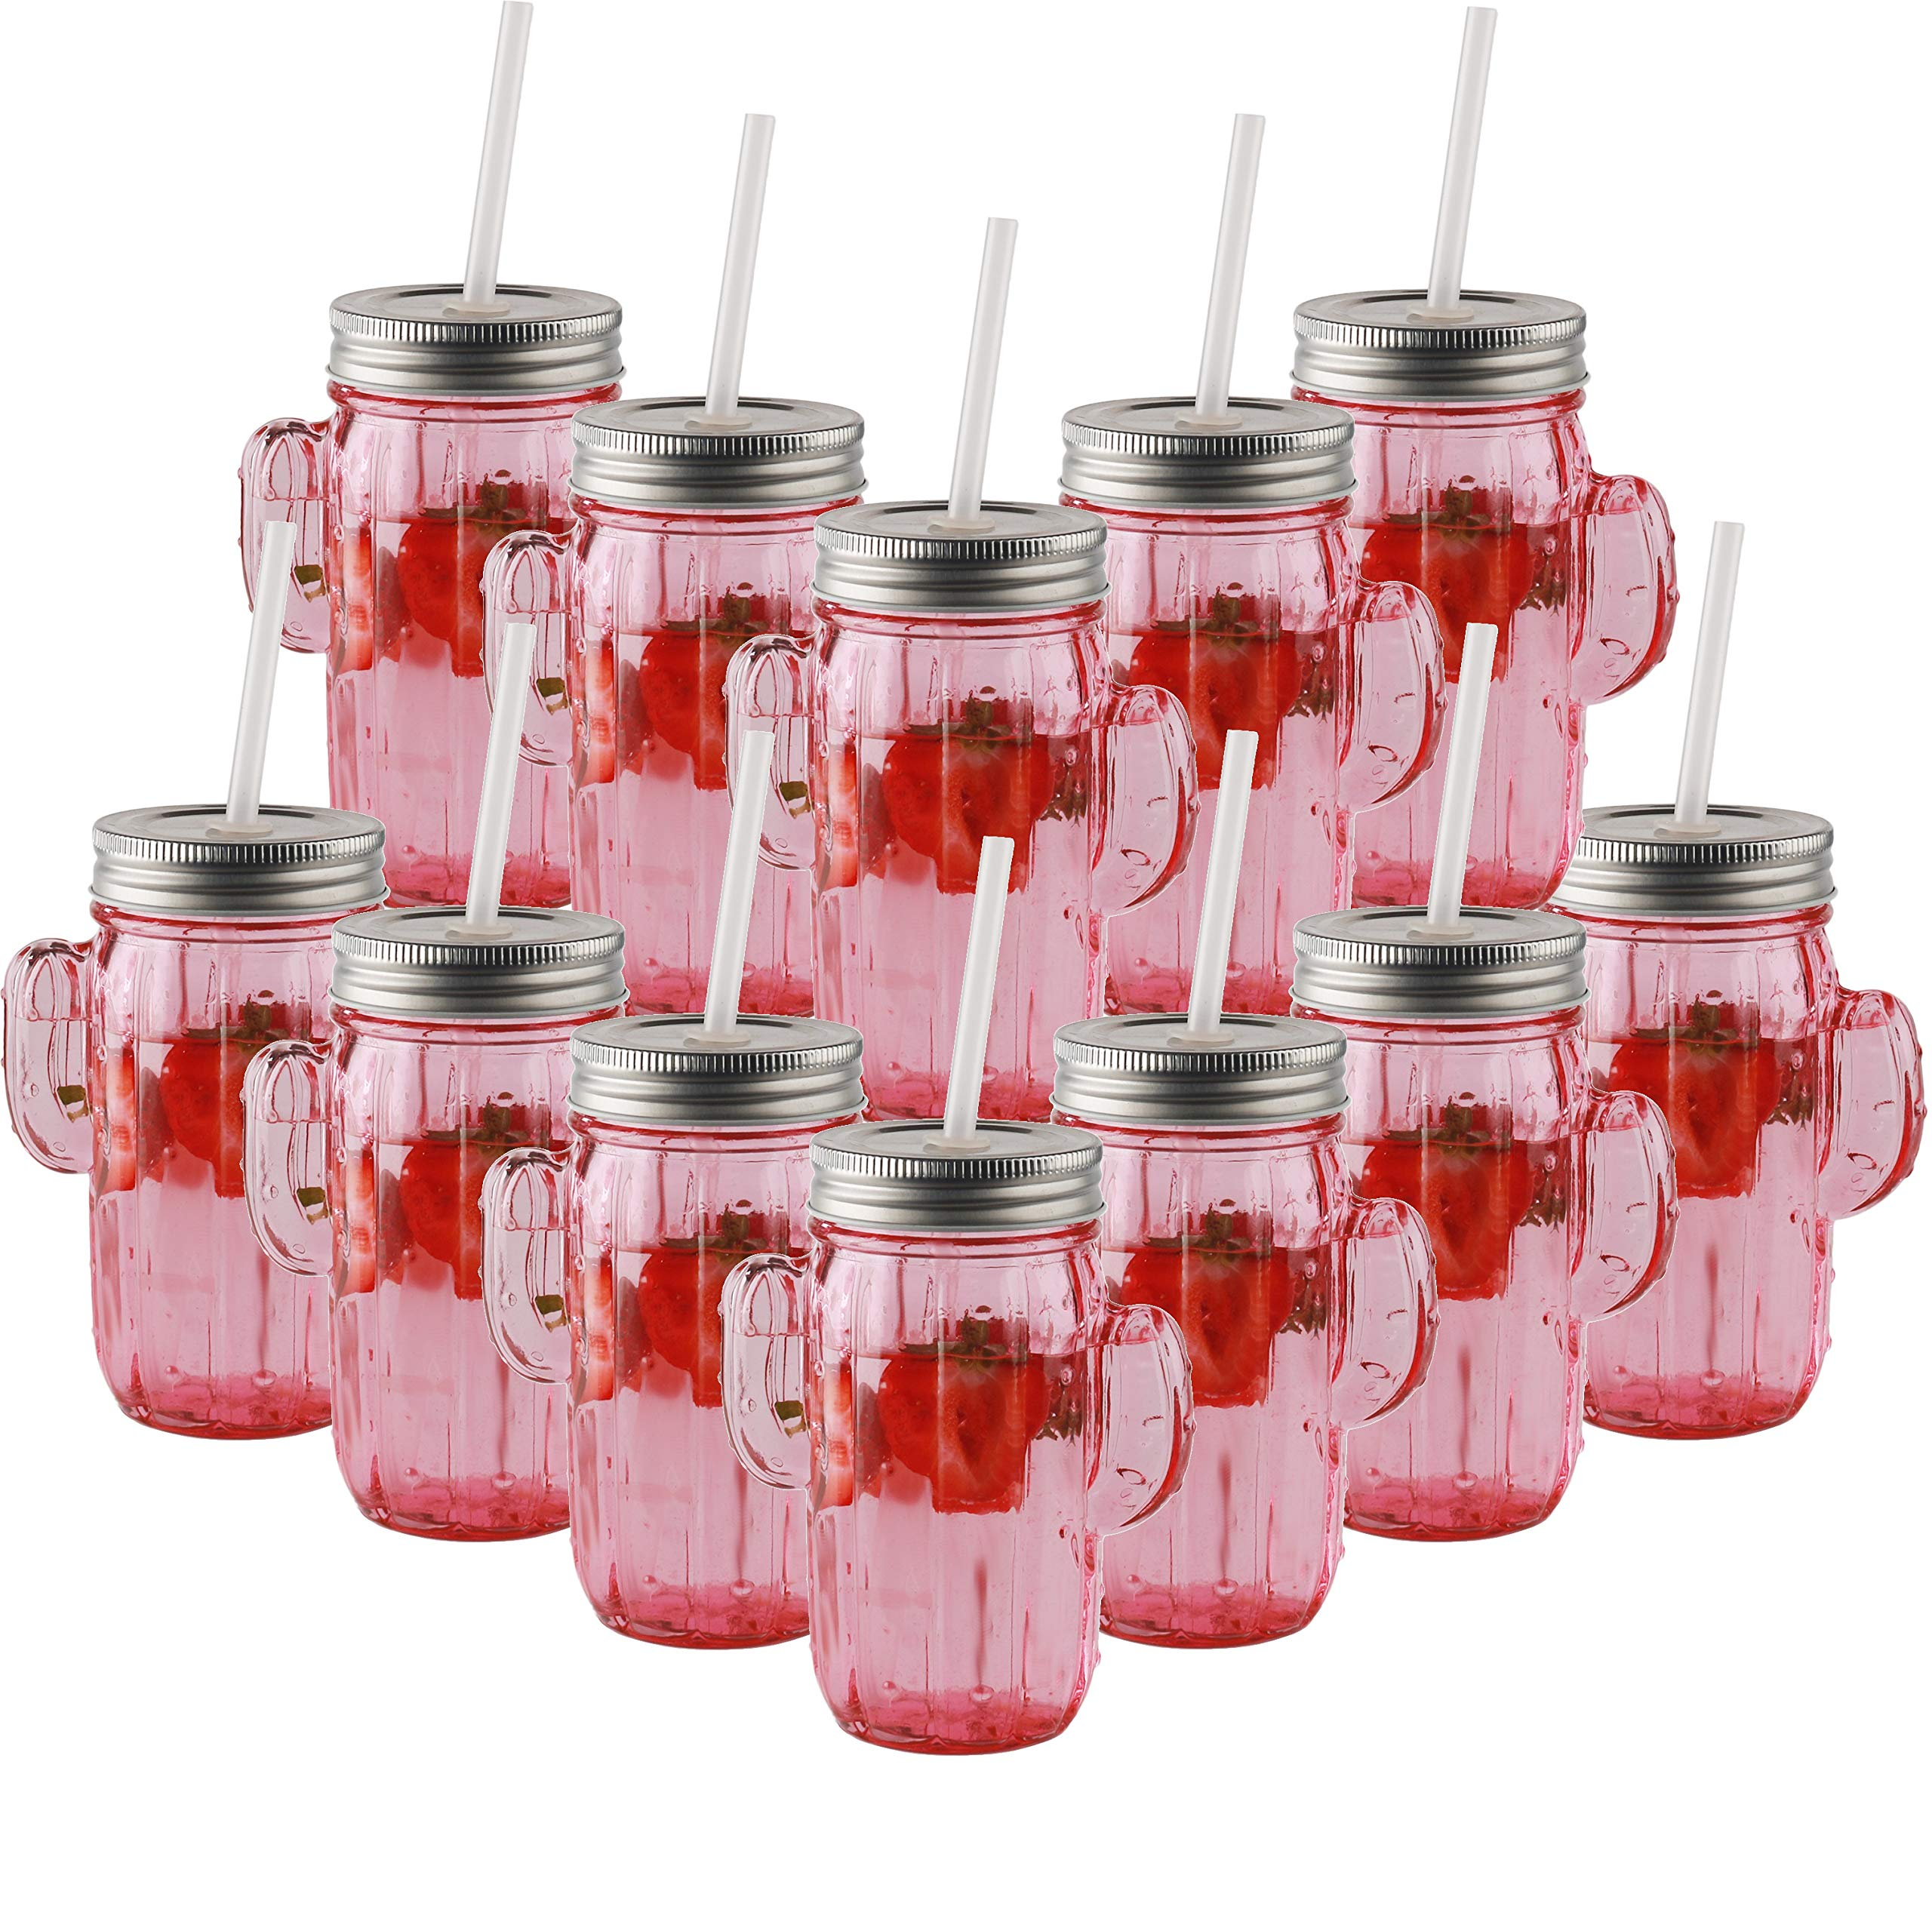 Circleware 06367 Huge Set of 12 Mason Jars Drinking Glasses with Metal Lids and Hard Straws Glassware for Water Beer and Kitchen & Home Decor Bar Dining Beverage Gifts, 15.5 oz, Pink Cactus-12pc